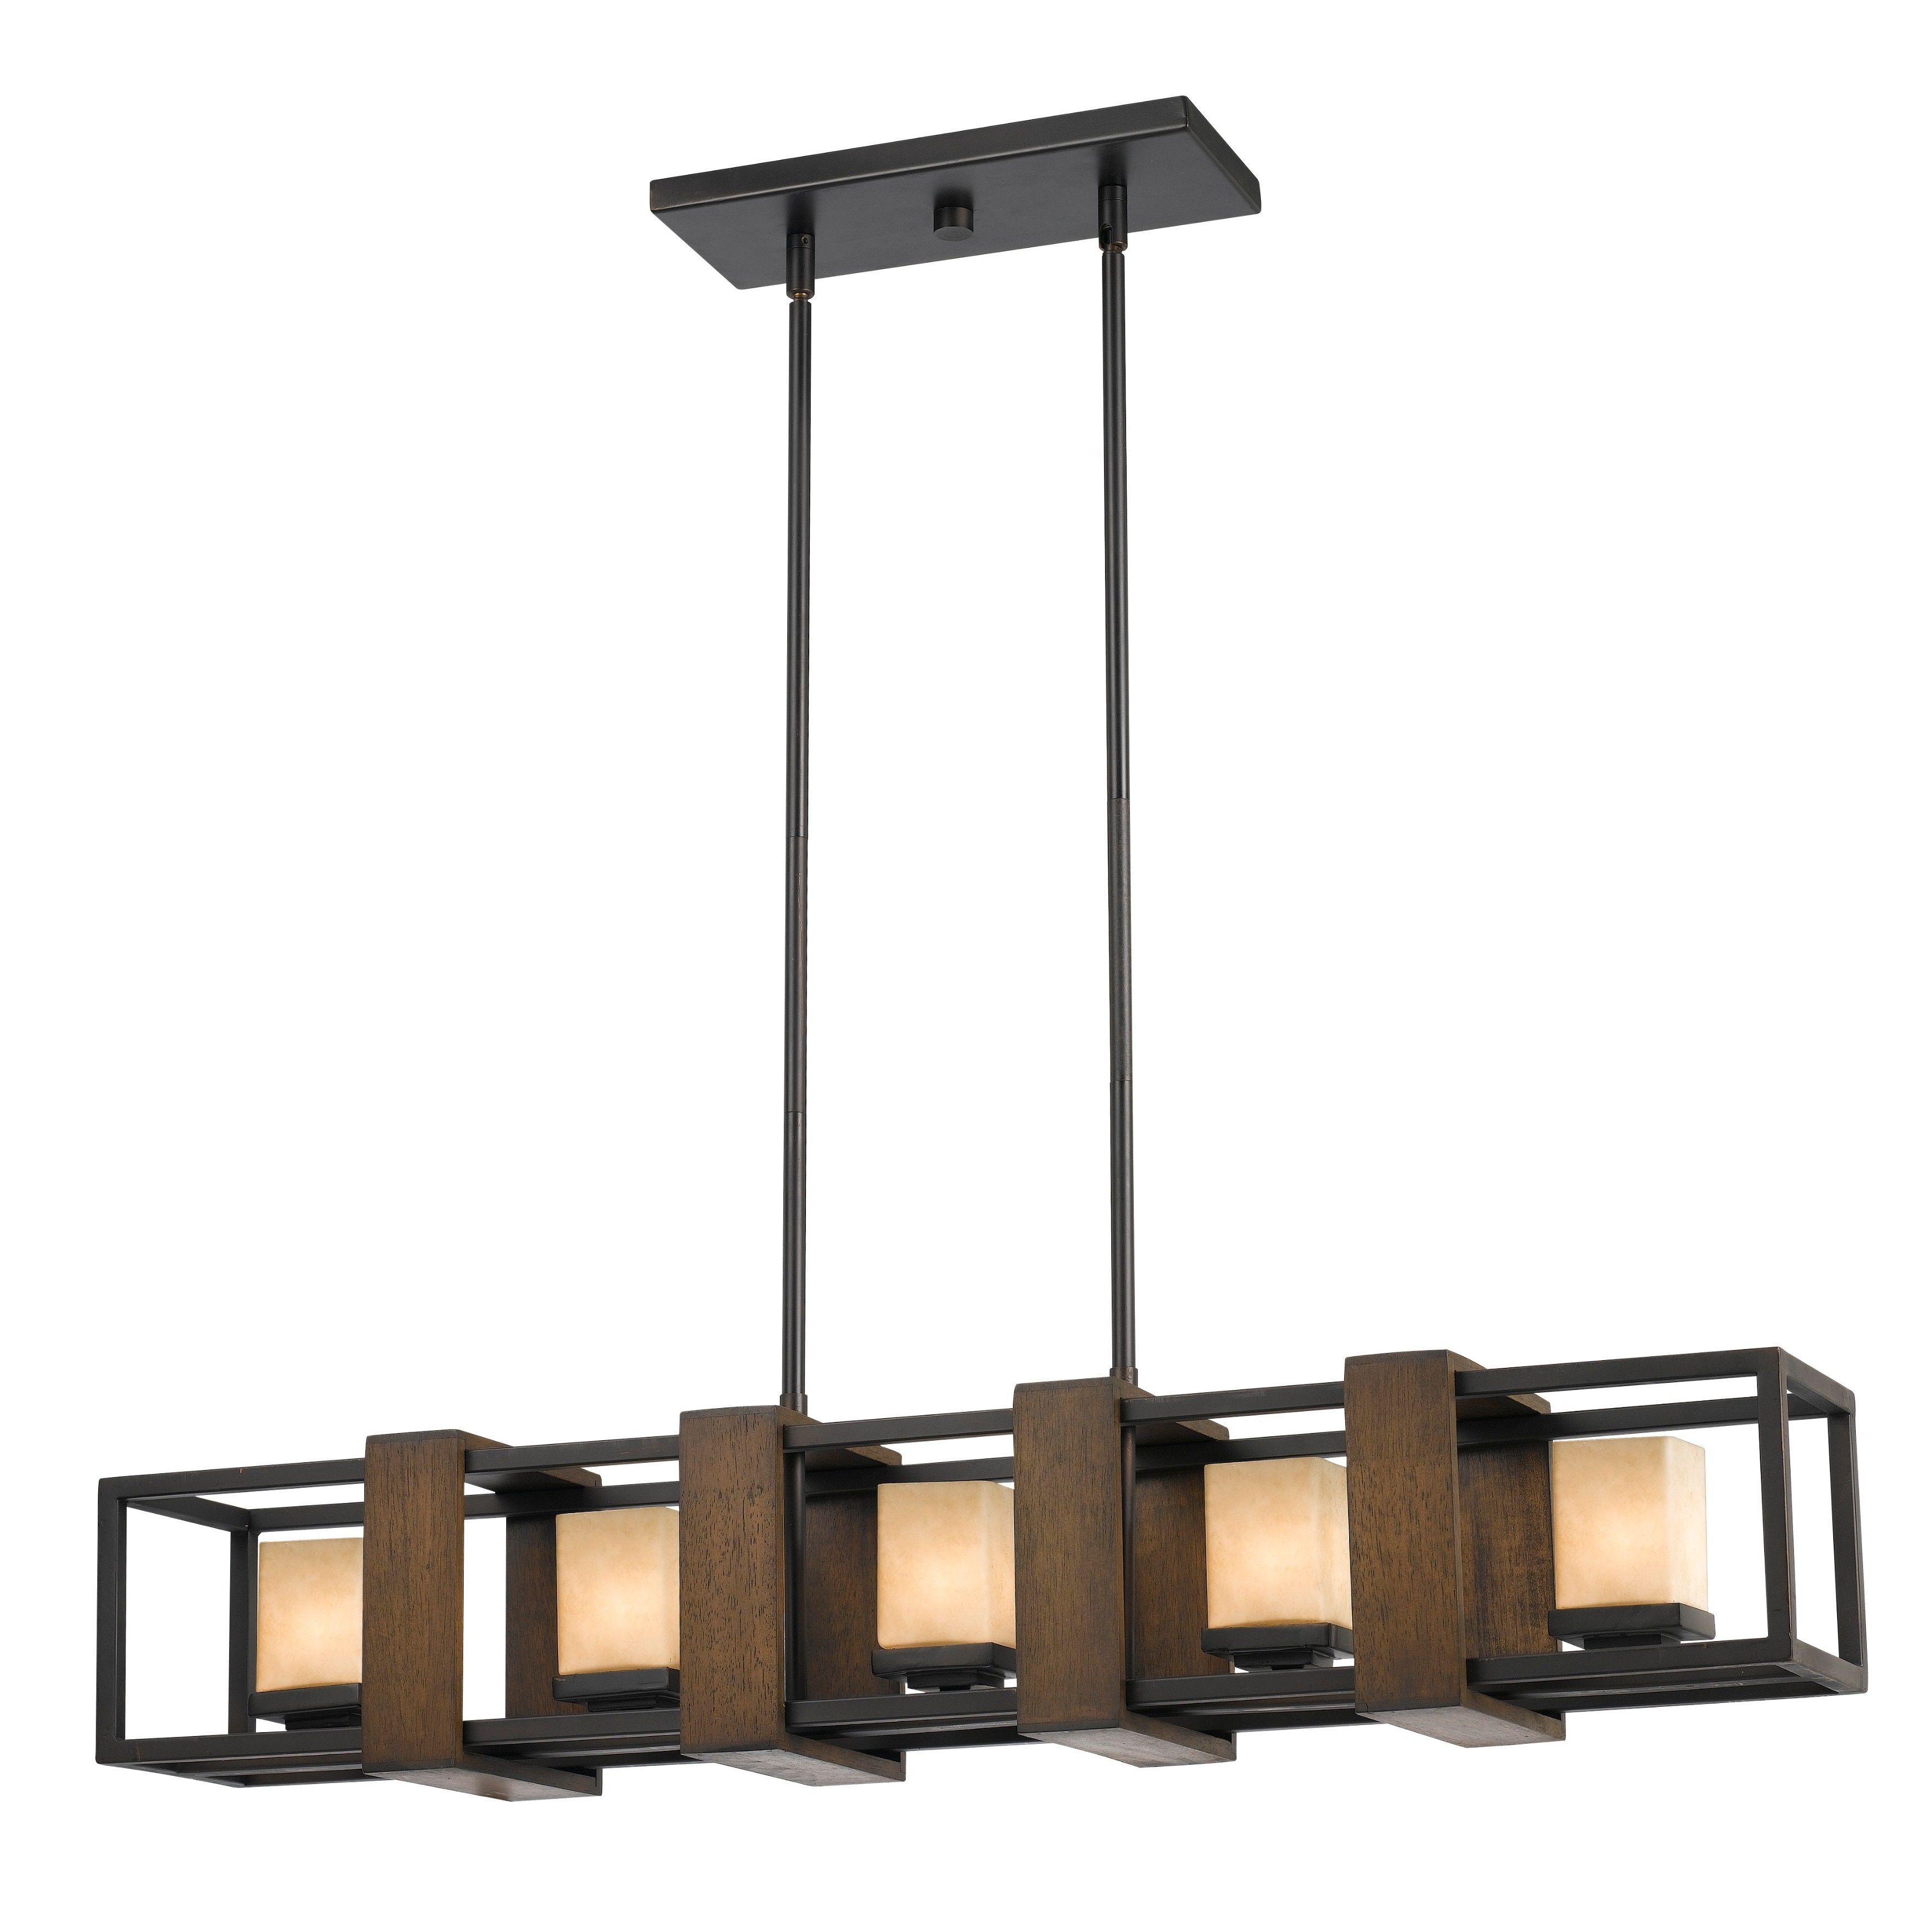 chandelier pendant modern new rectangular rustic country therobotechpage light french kitchen fixtures room inspirational arturo for of lighting island dining